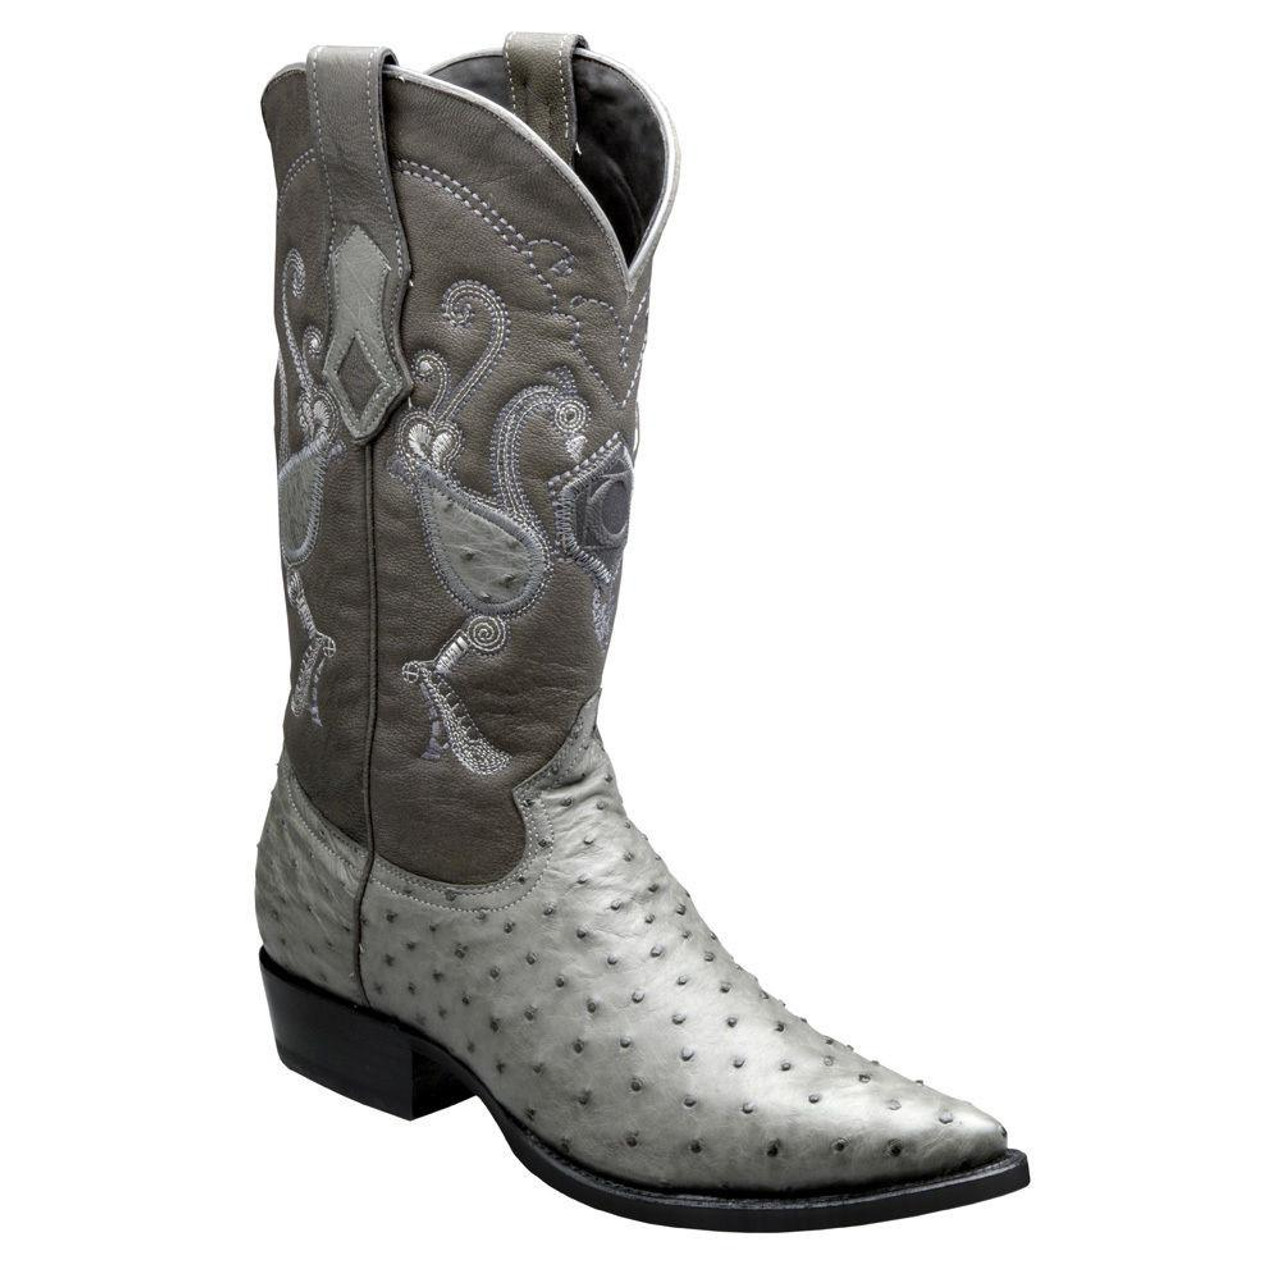 3fd30421b6e Cuadra Men's Traditional Ostrich Western Boots - Grey